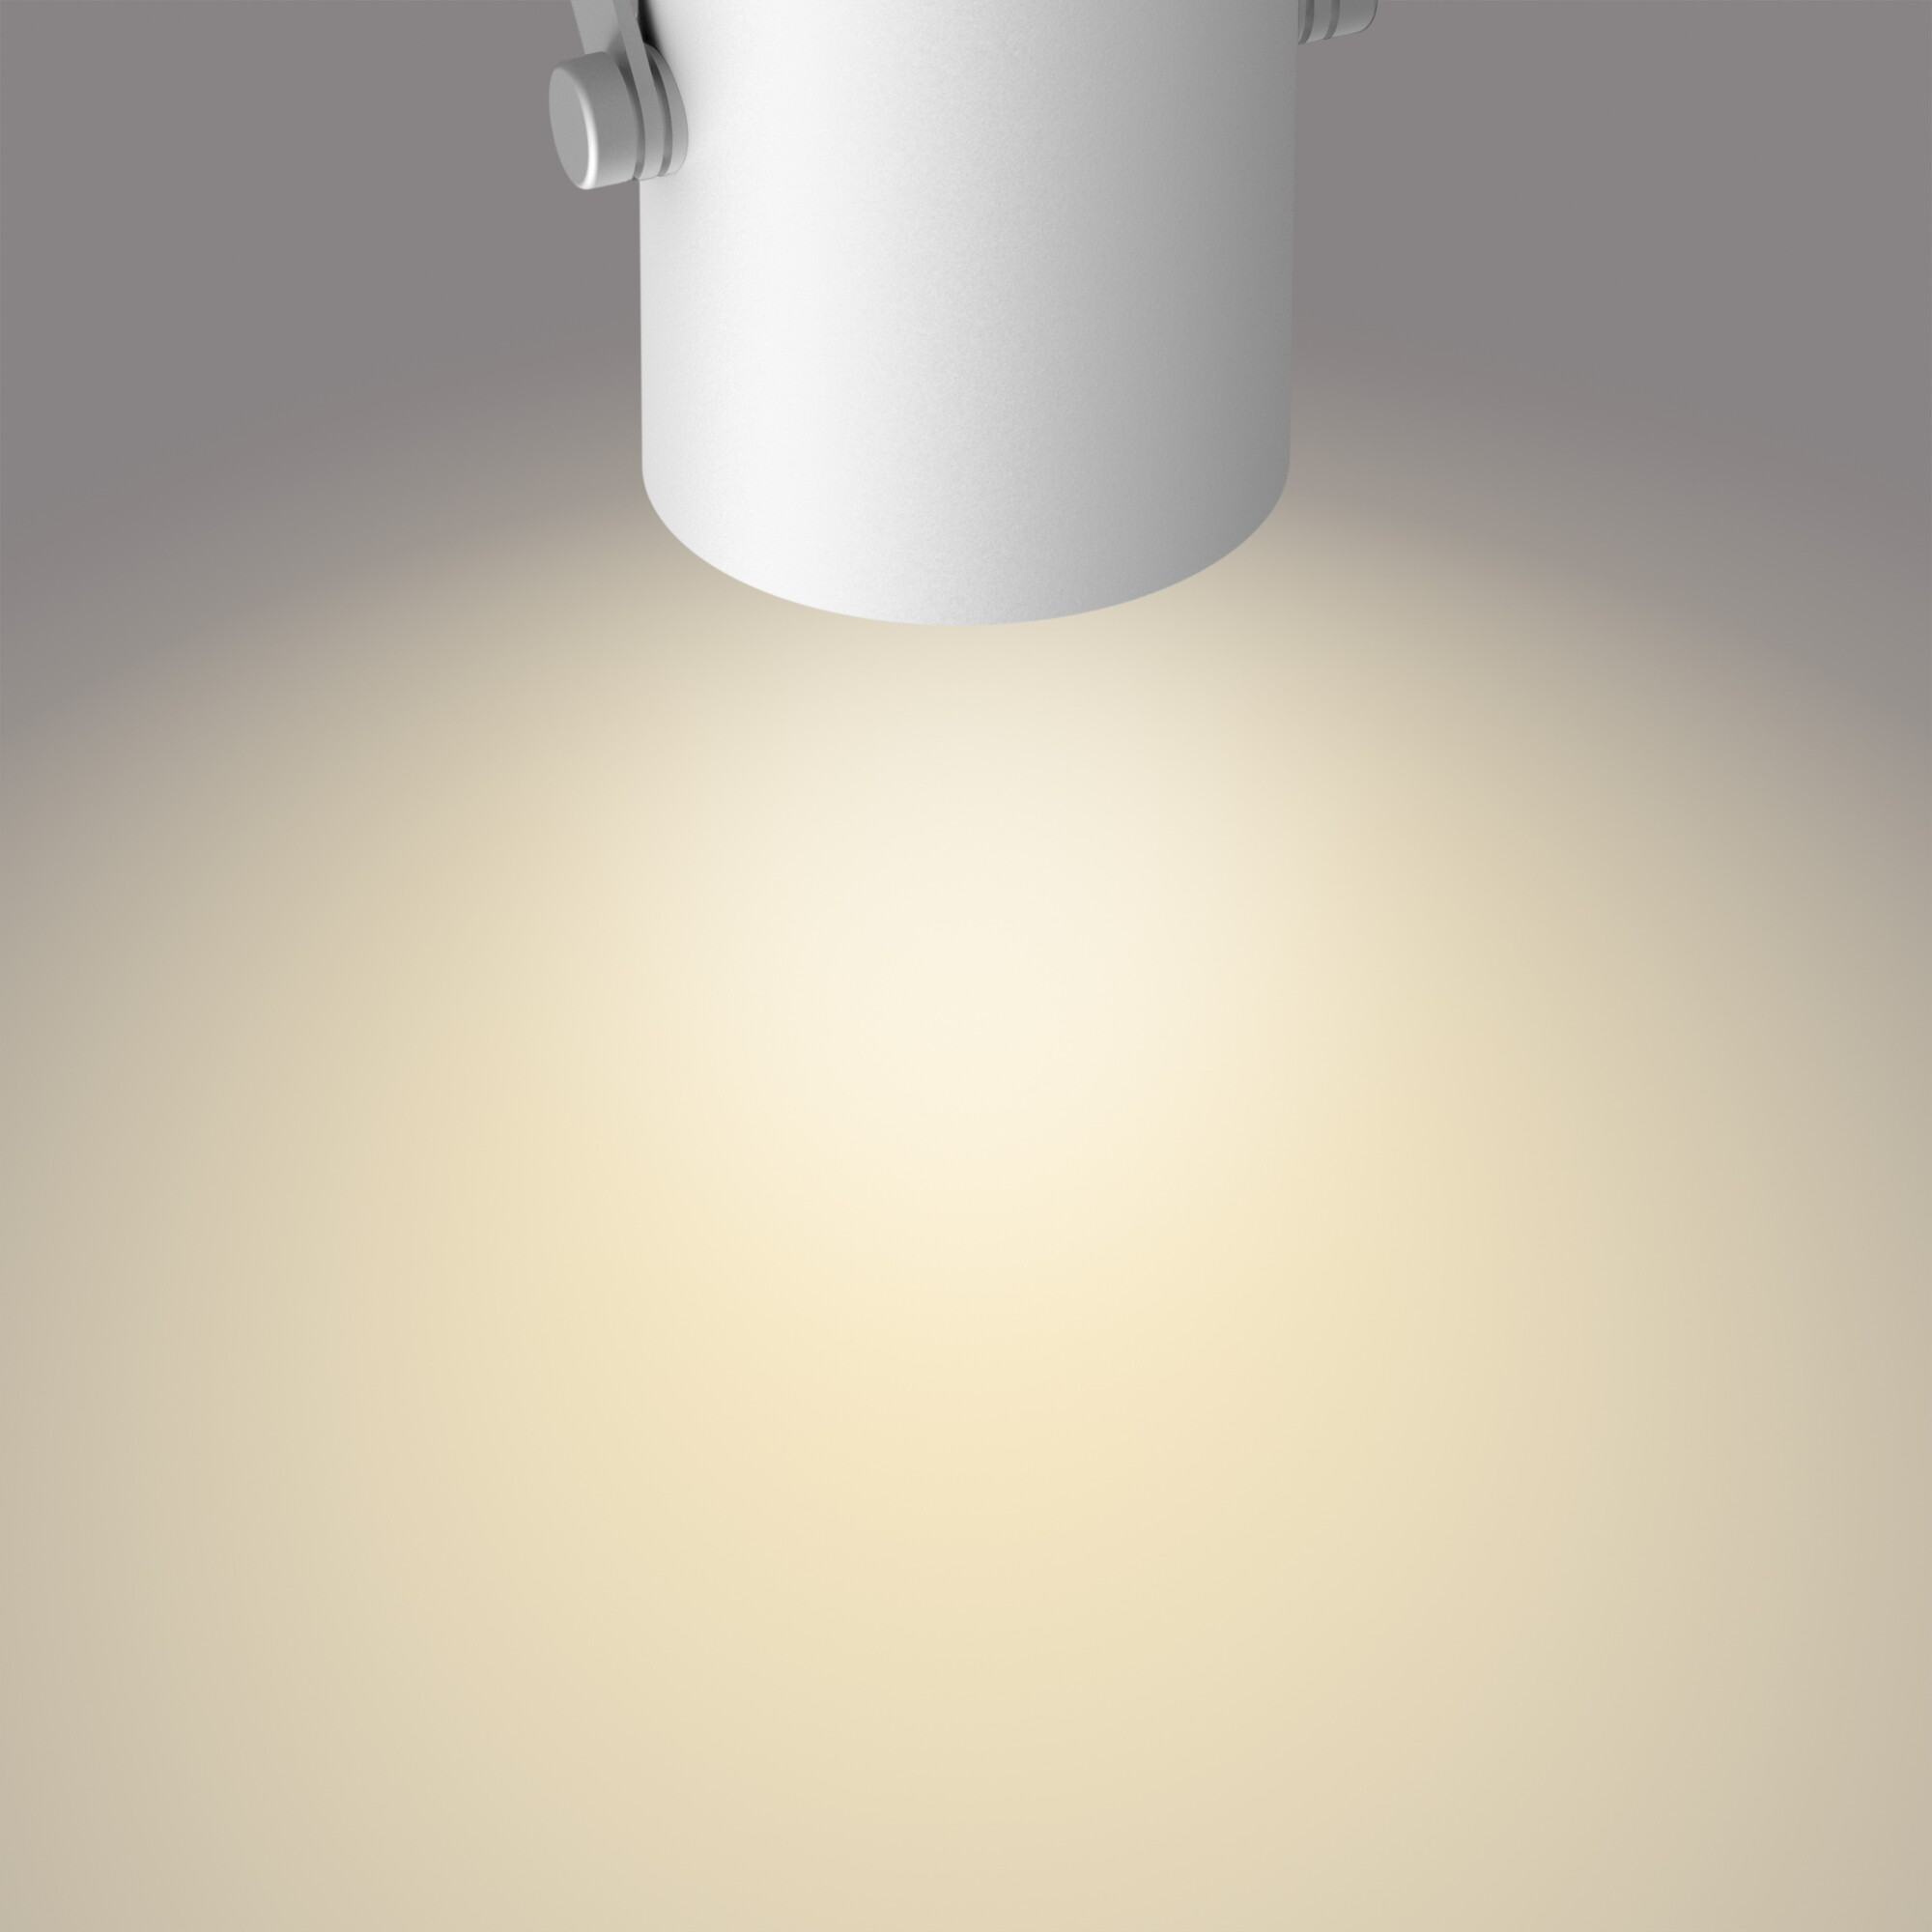 Philips BYRE Opbouwspot LED 1x4,3W/430lm Wit